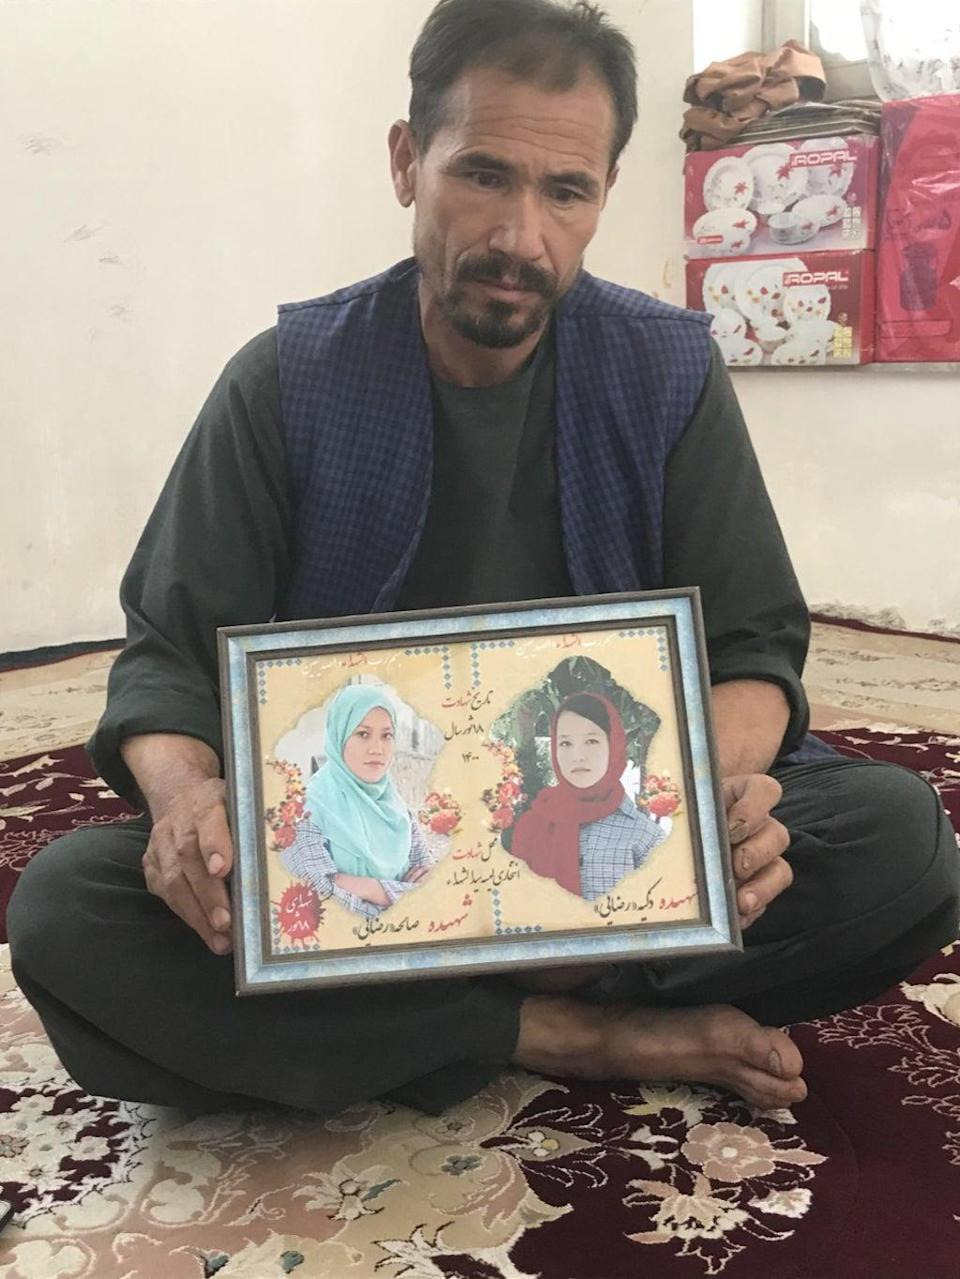 Rajab Ali Razayee holds a picture of his two daughters, who were killed in a school bombing in May (Kim Sengupta)